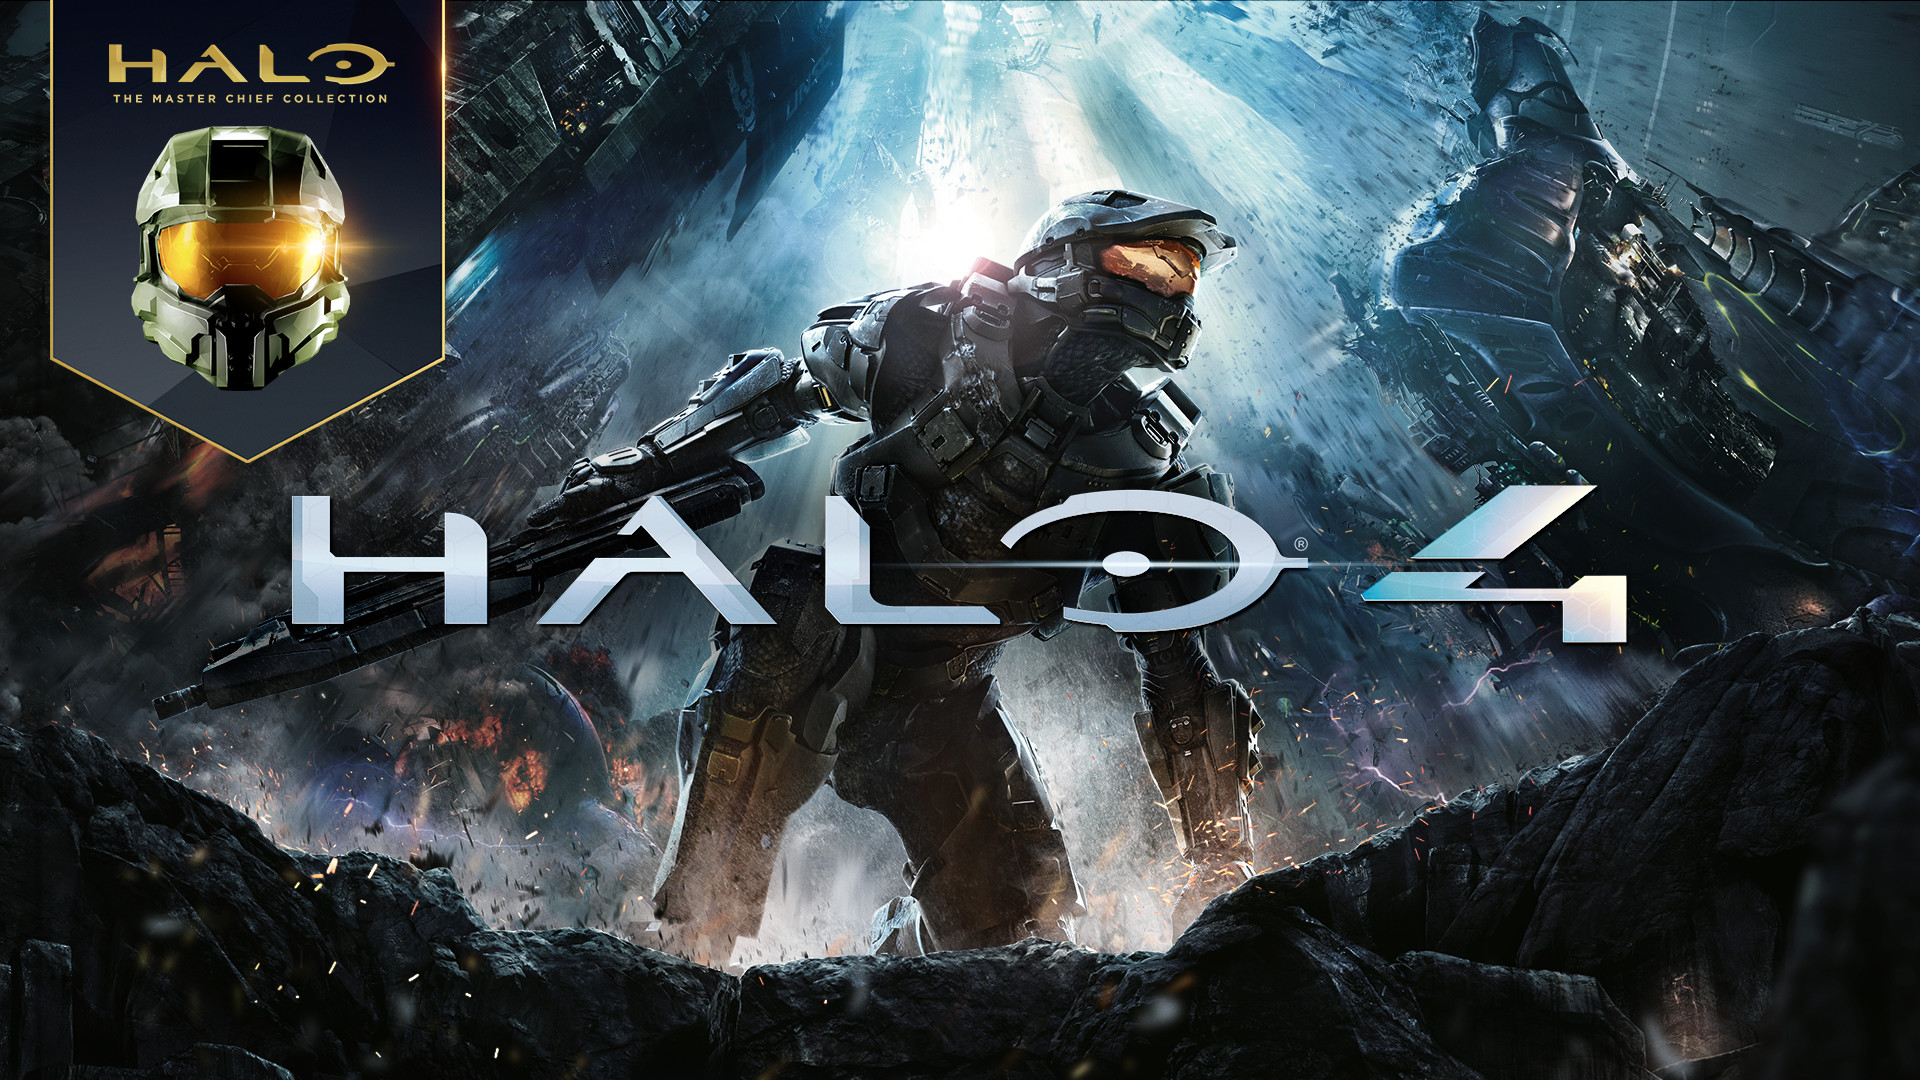 Halo 4 to join the Master Chief Collection on PC on November 17th